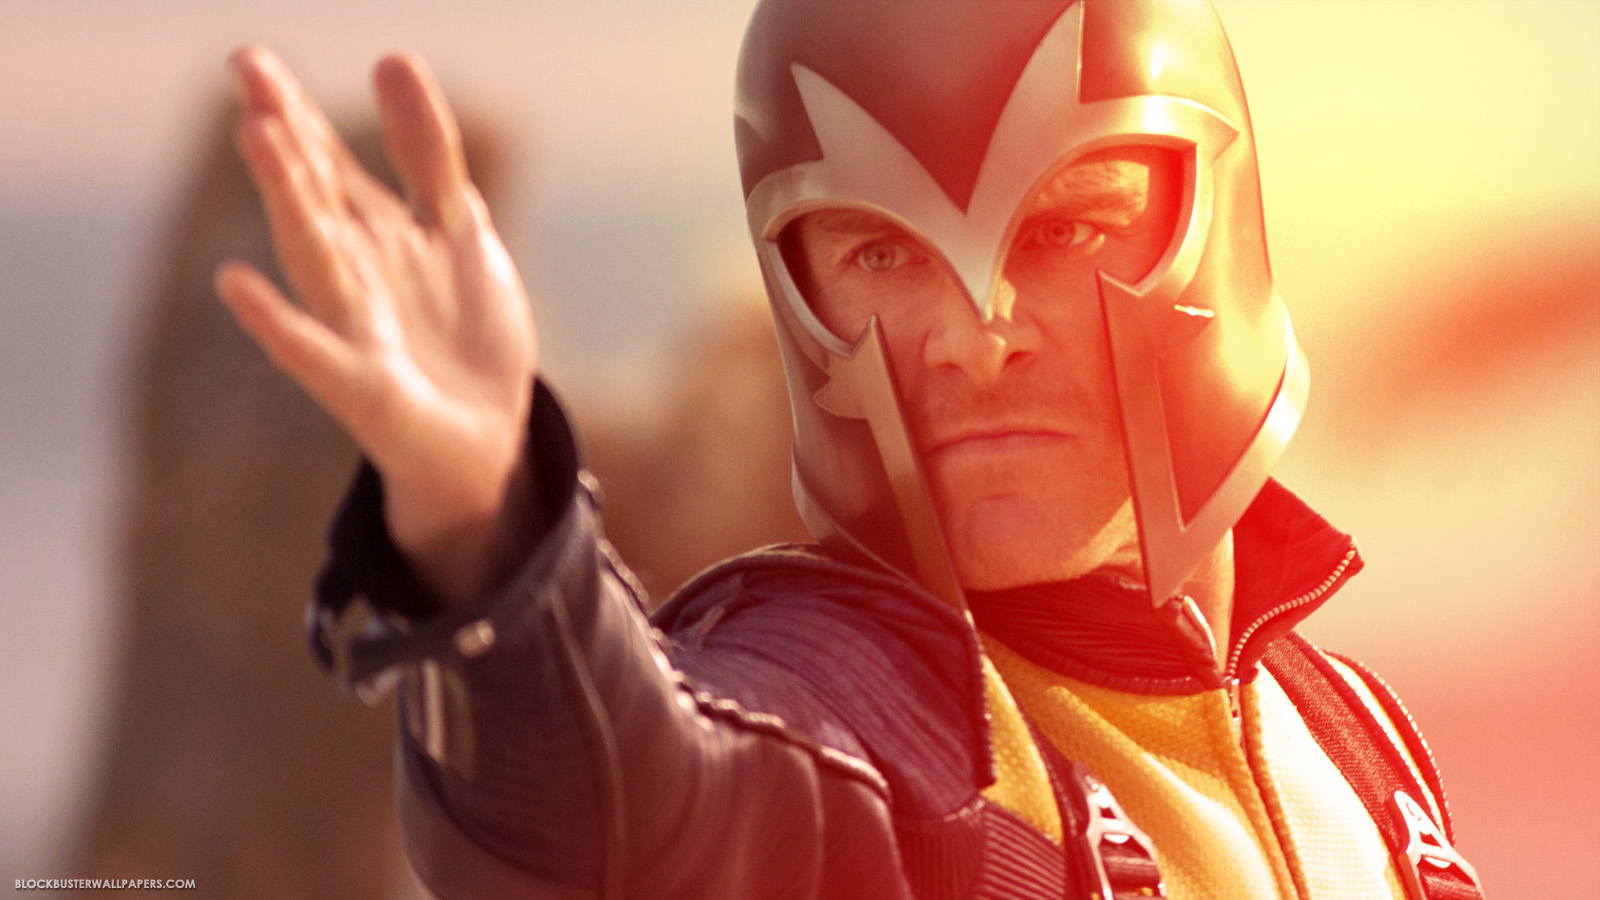 Michael Fassbender Images As Magneto HD Wallpaper And Background Photos